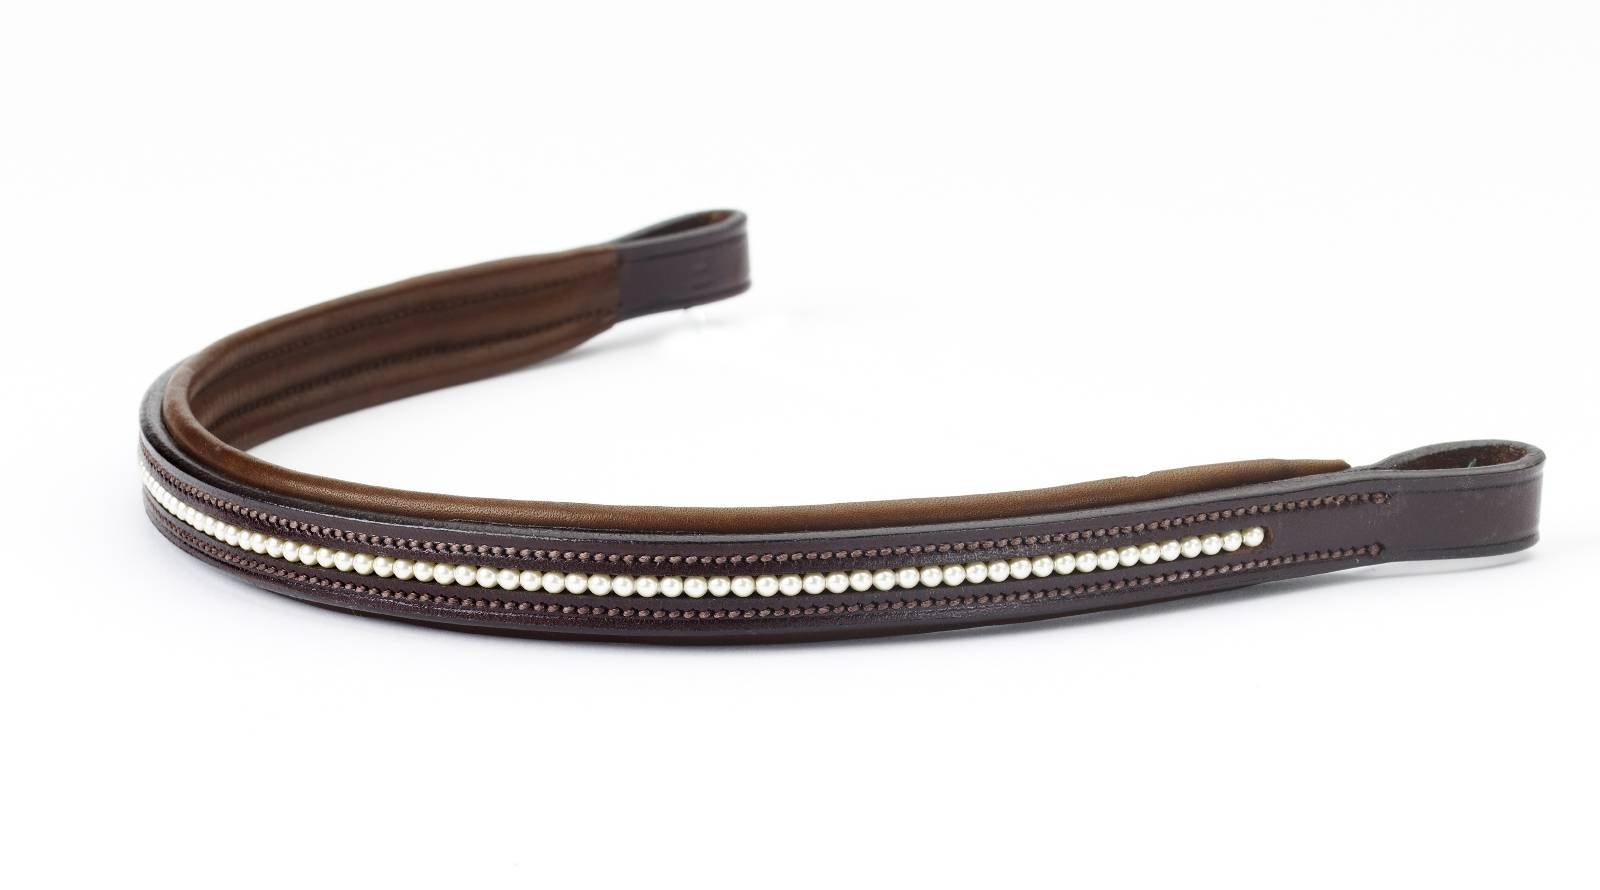 Ovation Delicate Pearls Browband